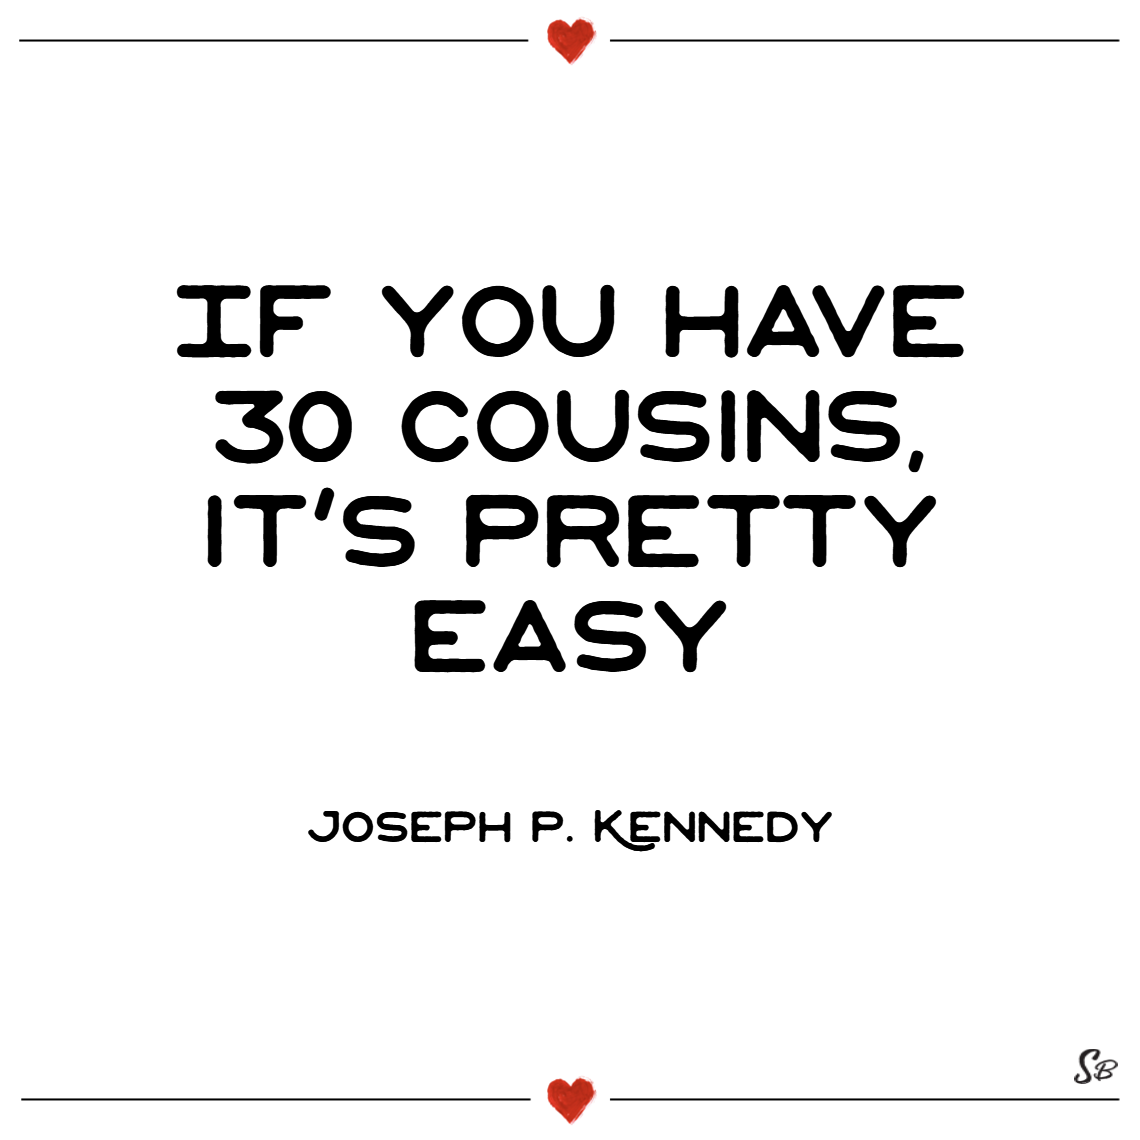 If you have 30 cousins, it's pretty easy. – joseph p. kennedy